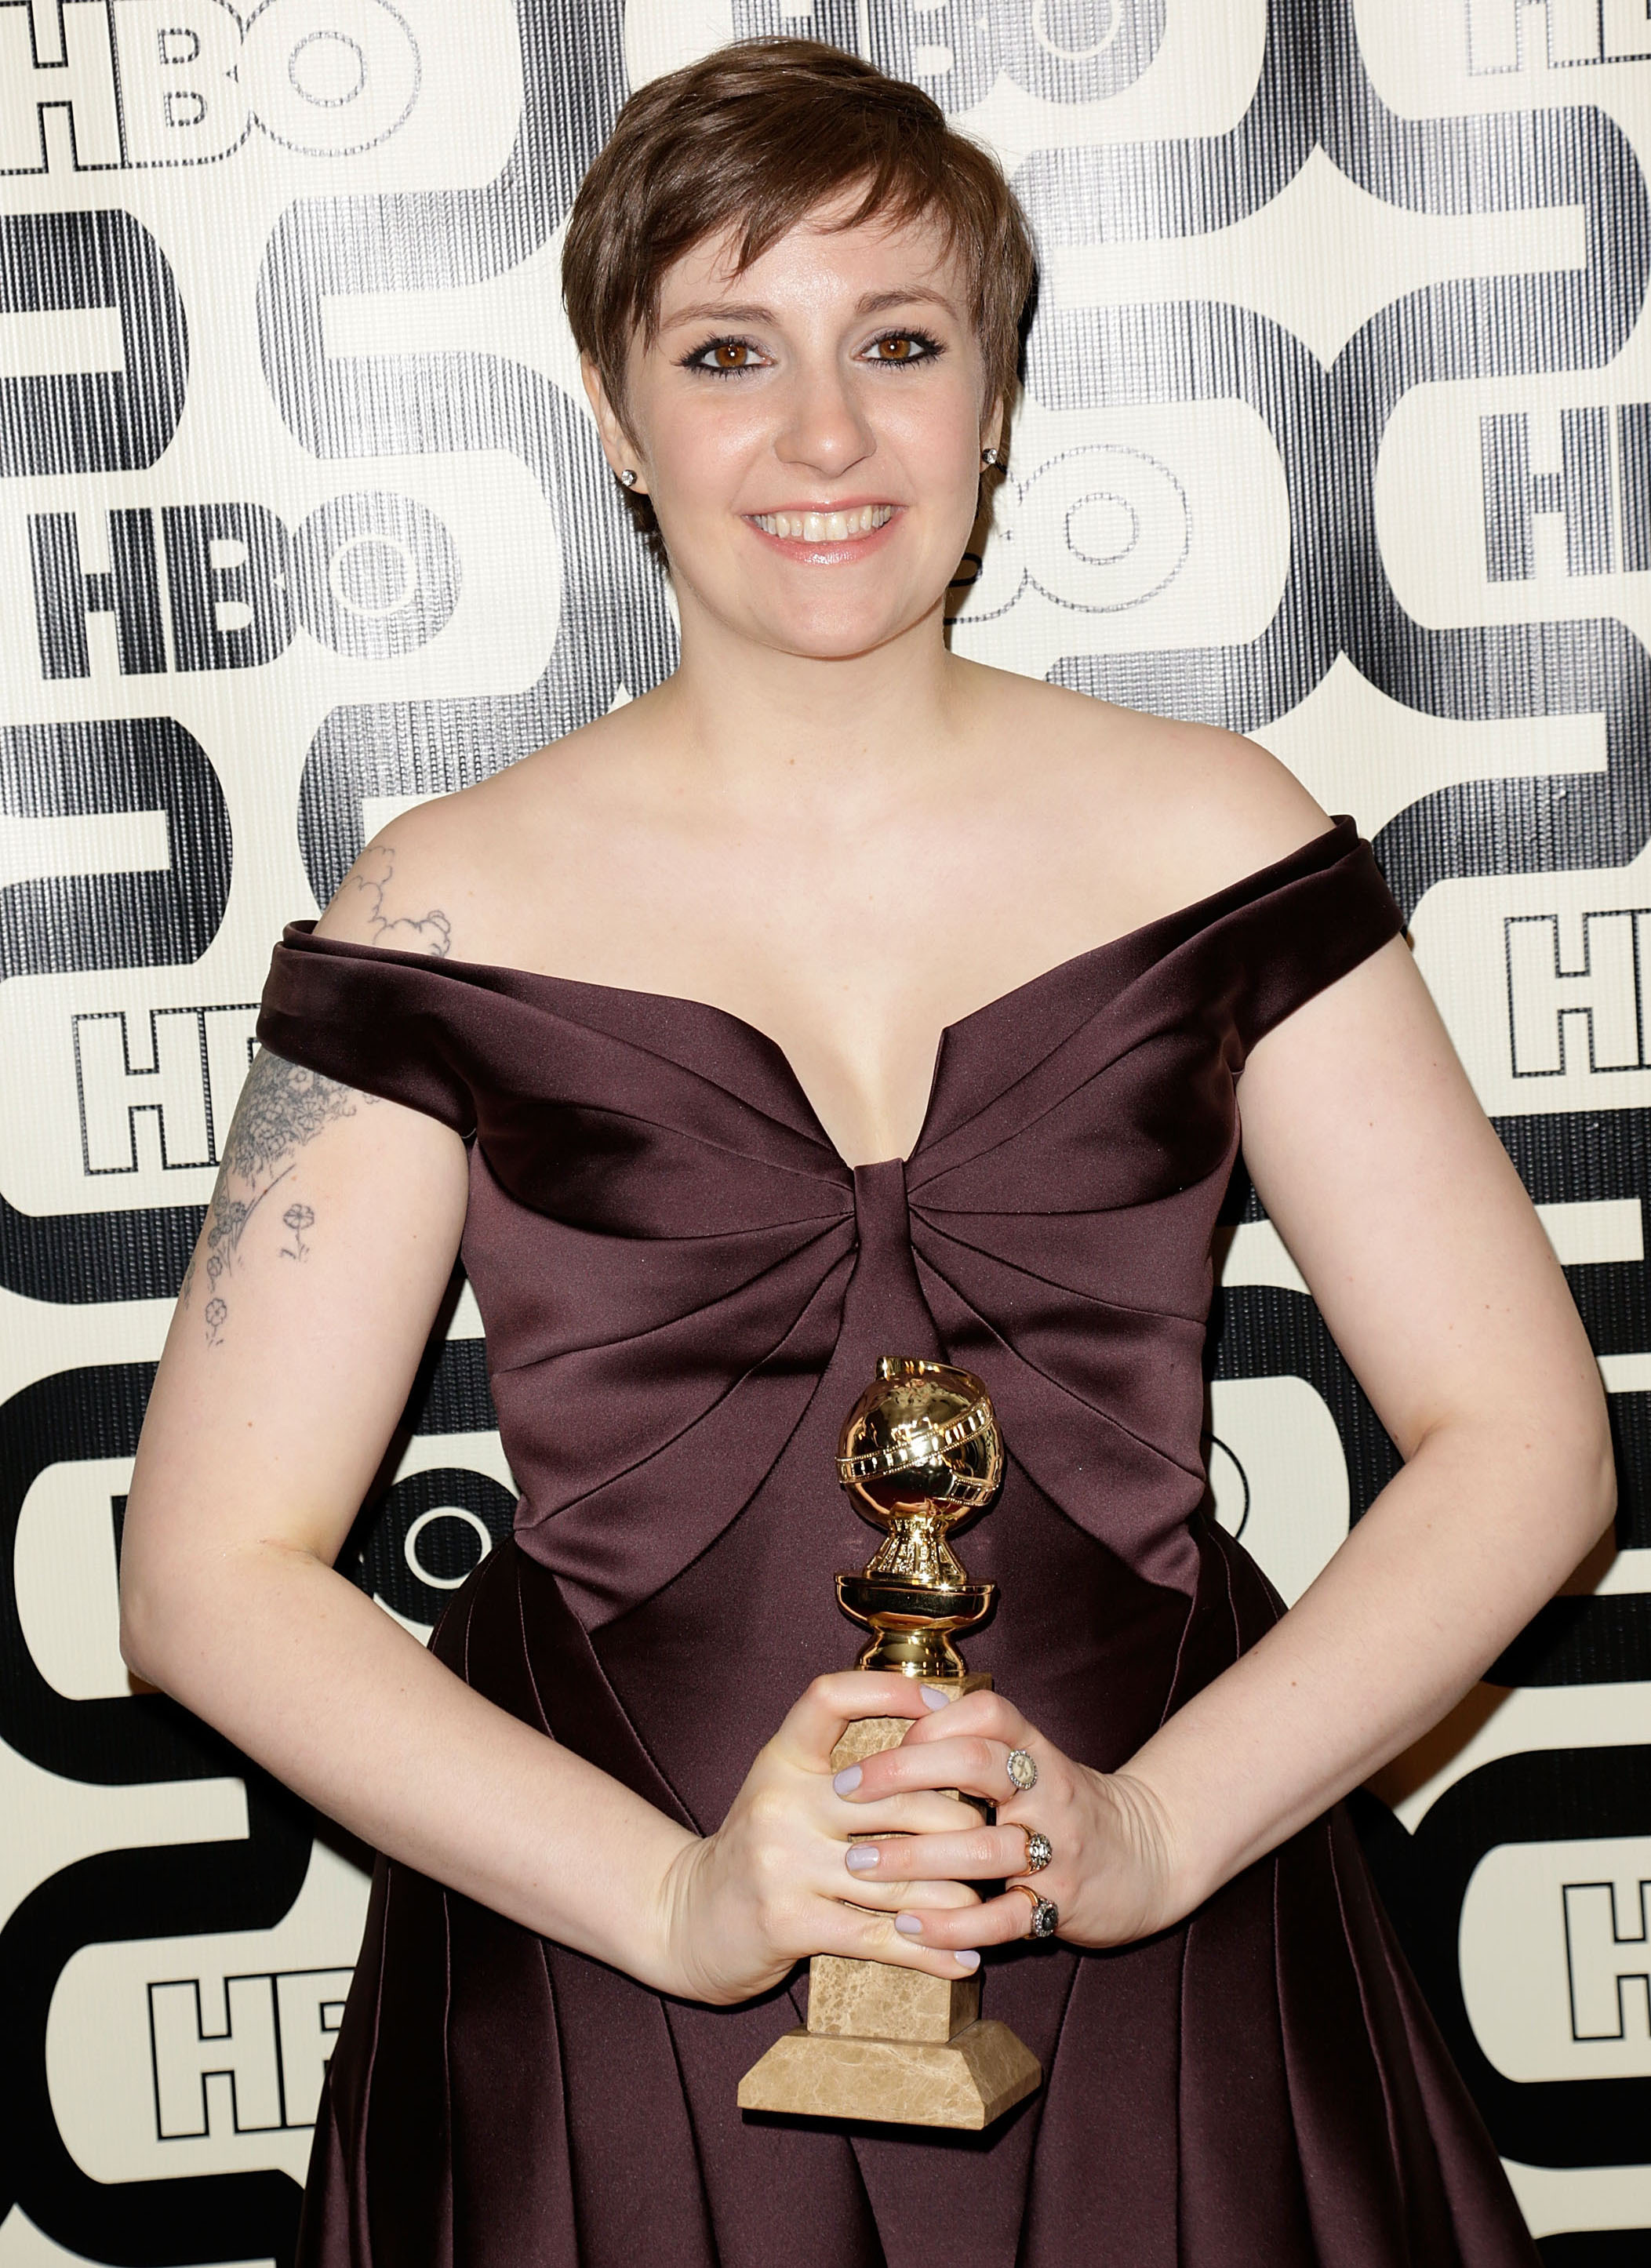 Lena Dunham anxiety disorders, OCD sex fears, on Lexapro and Klonopin